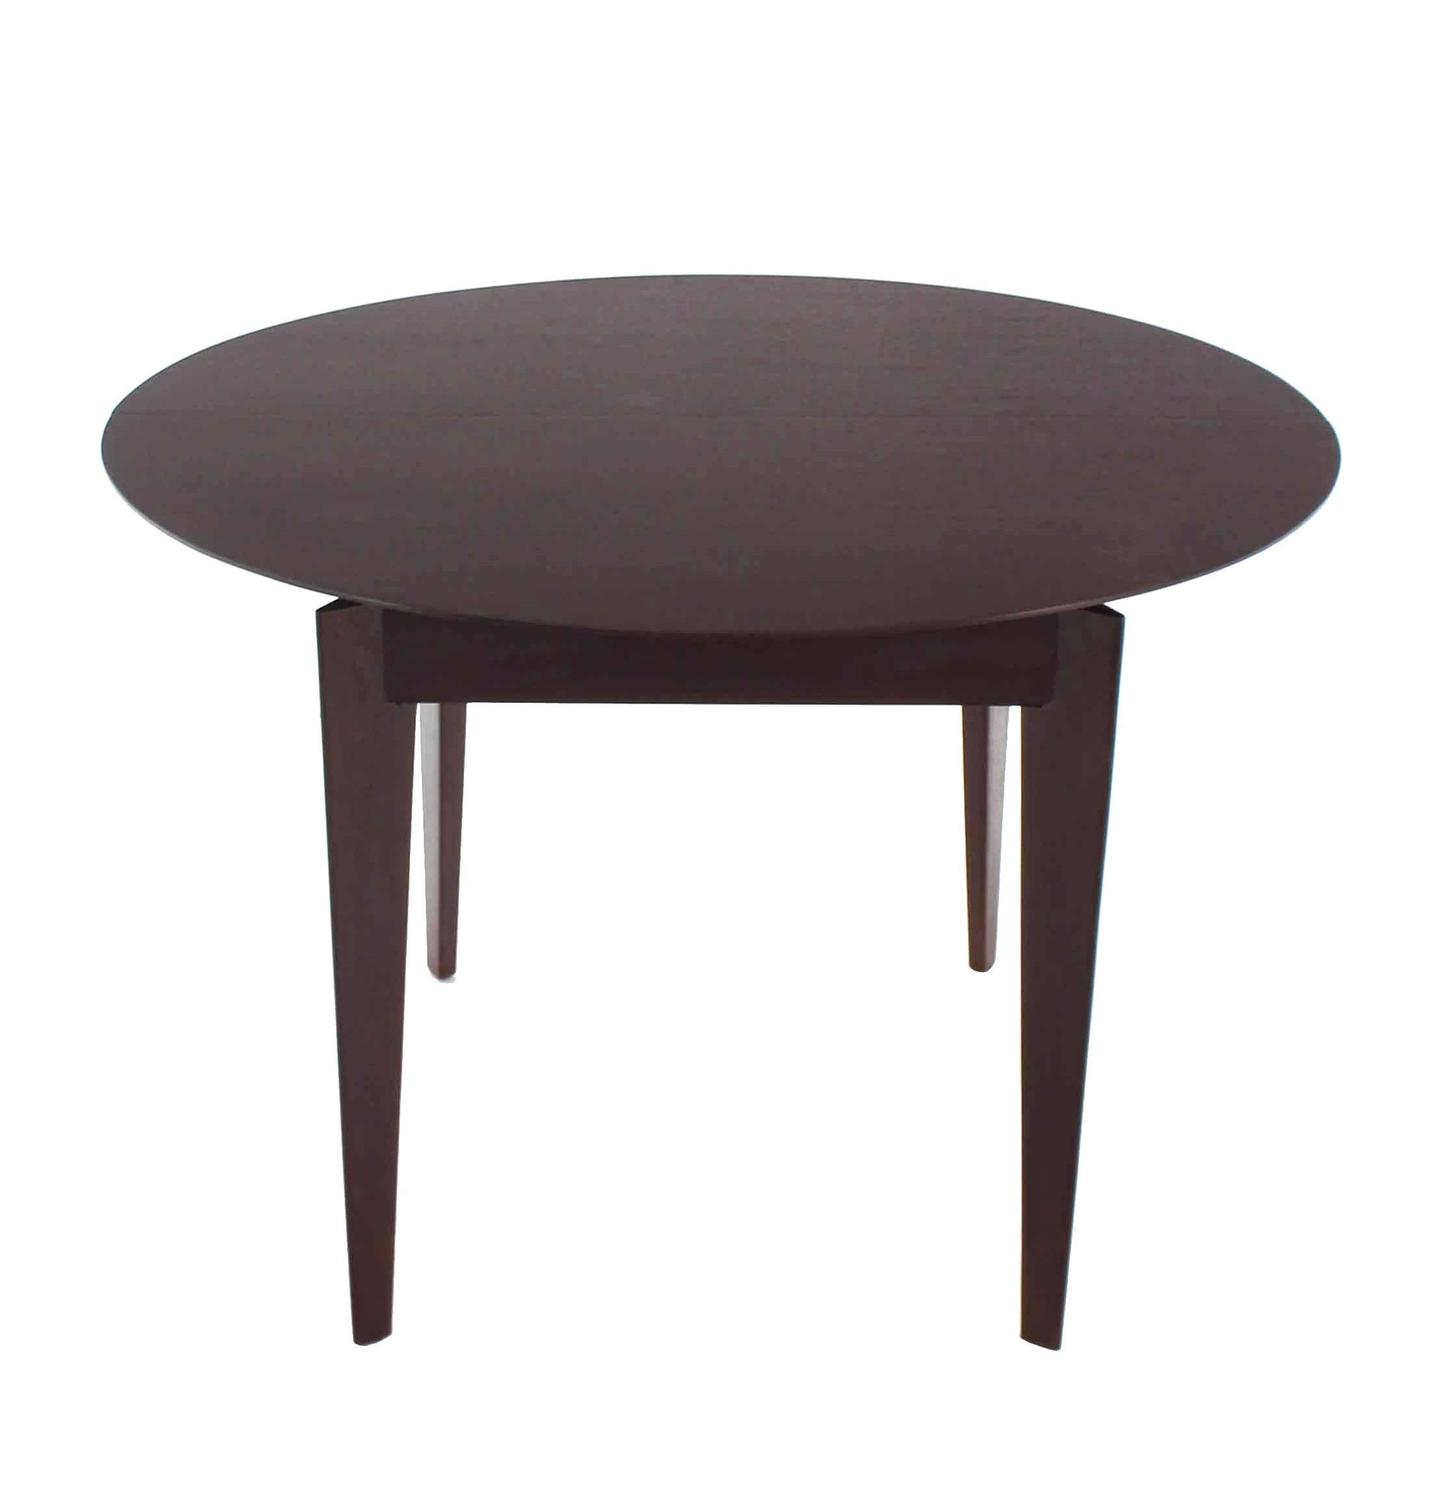 Mid century modern round dining table for sale at 1stdibs for Mid century modern dining table